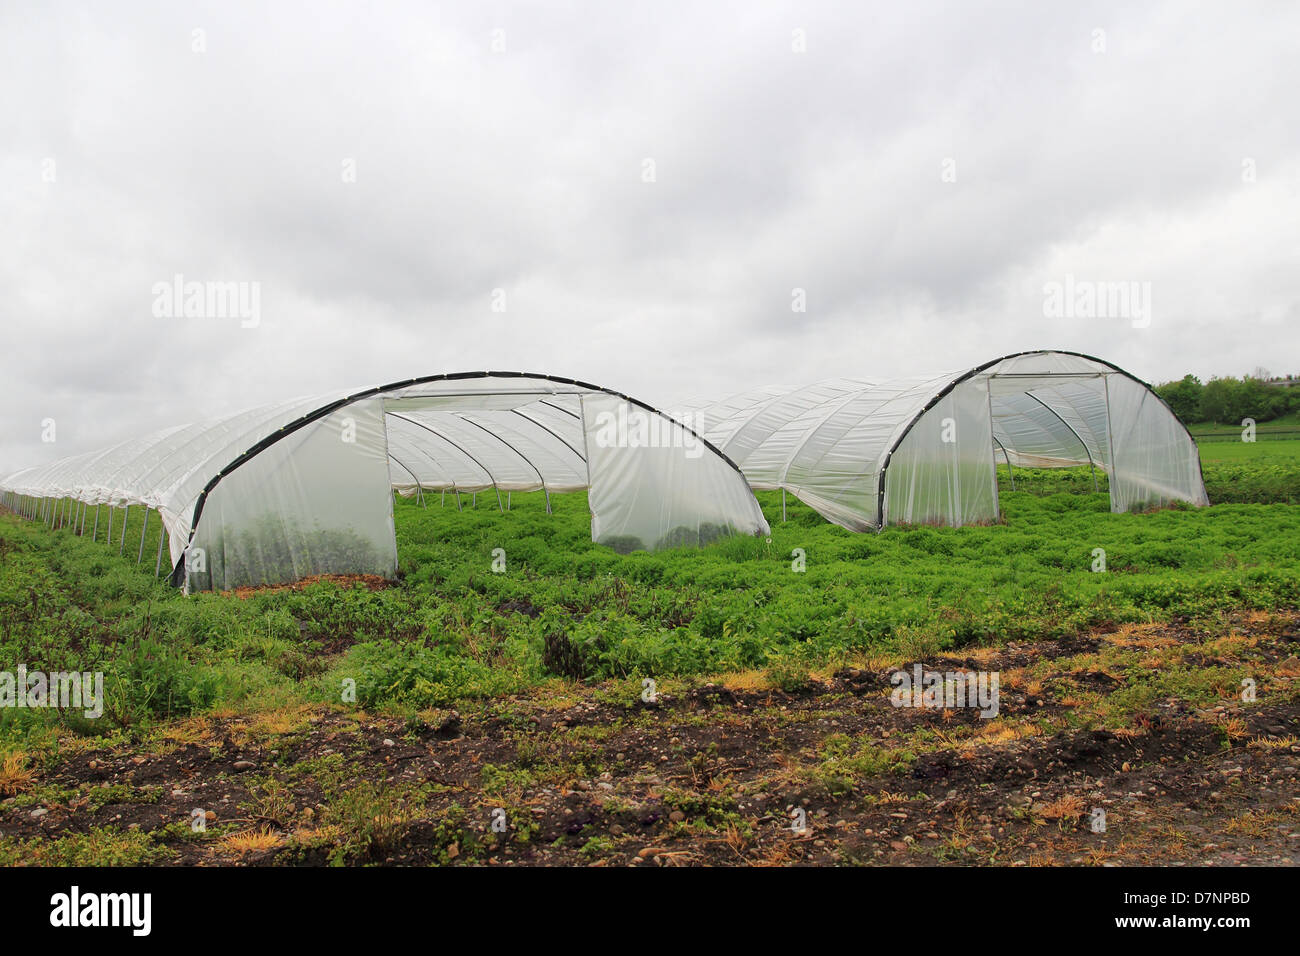 Two Greenhouses - Stock Image